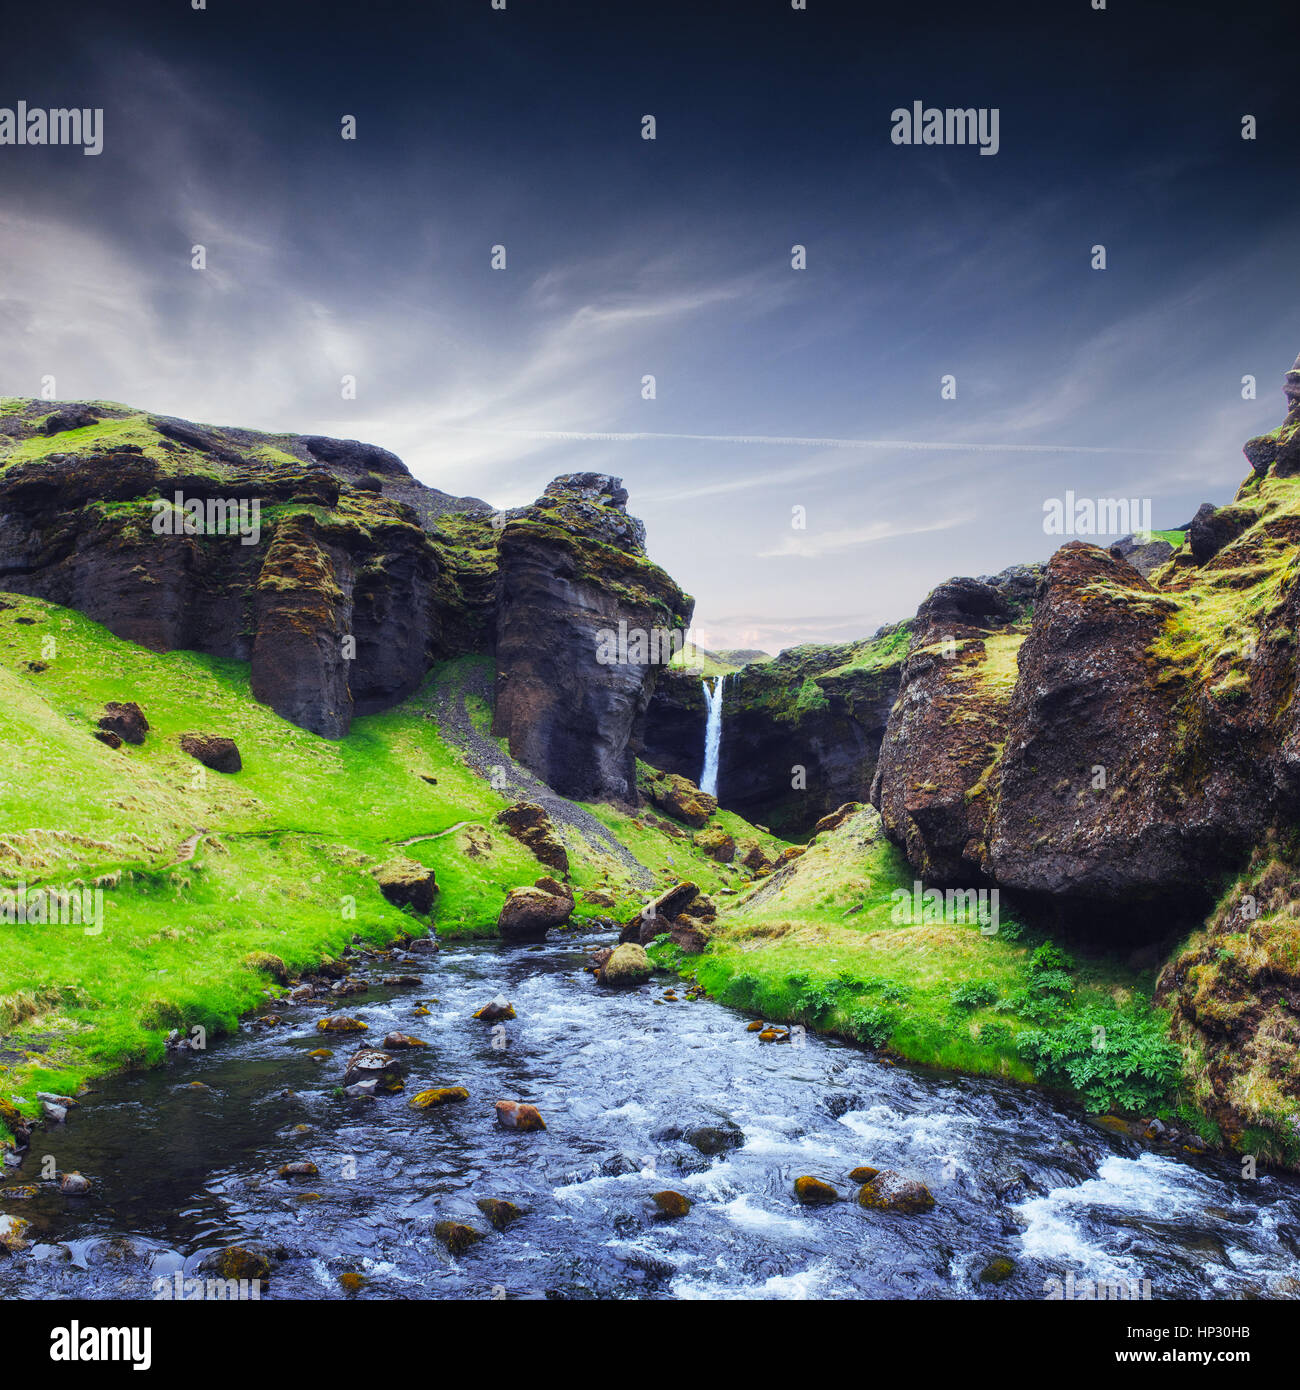 Fantastic landscape of mountains and waterfalls in Iceland - Stock Image